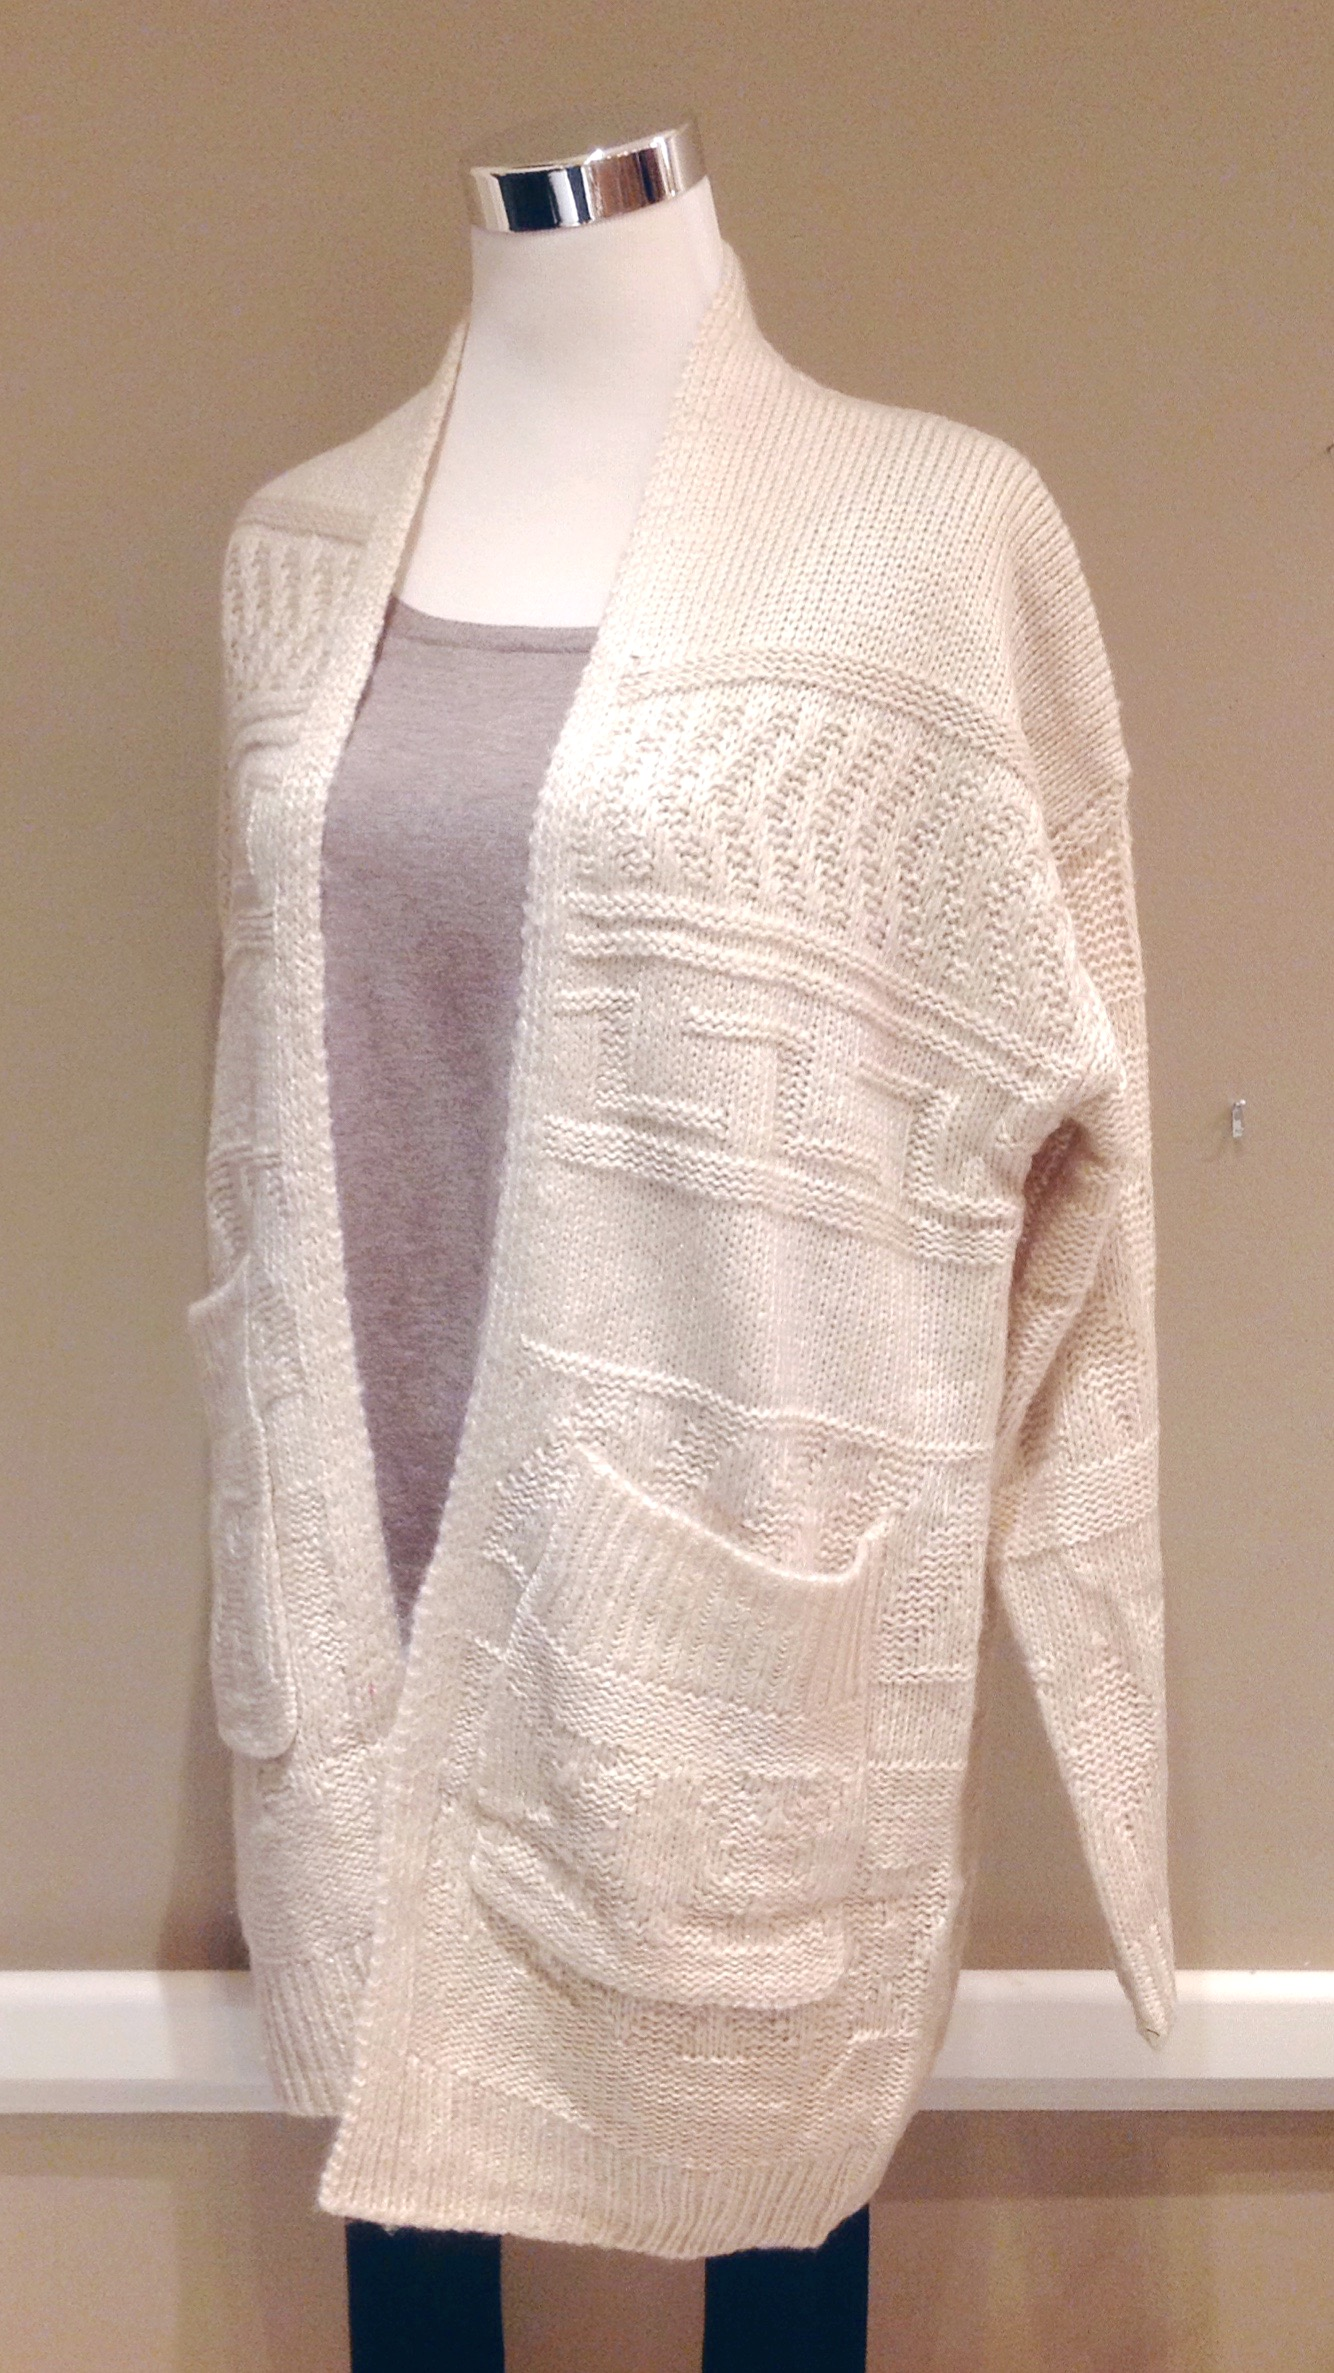 Taupe patterned knit cardigan with patch pockets, $48